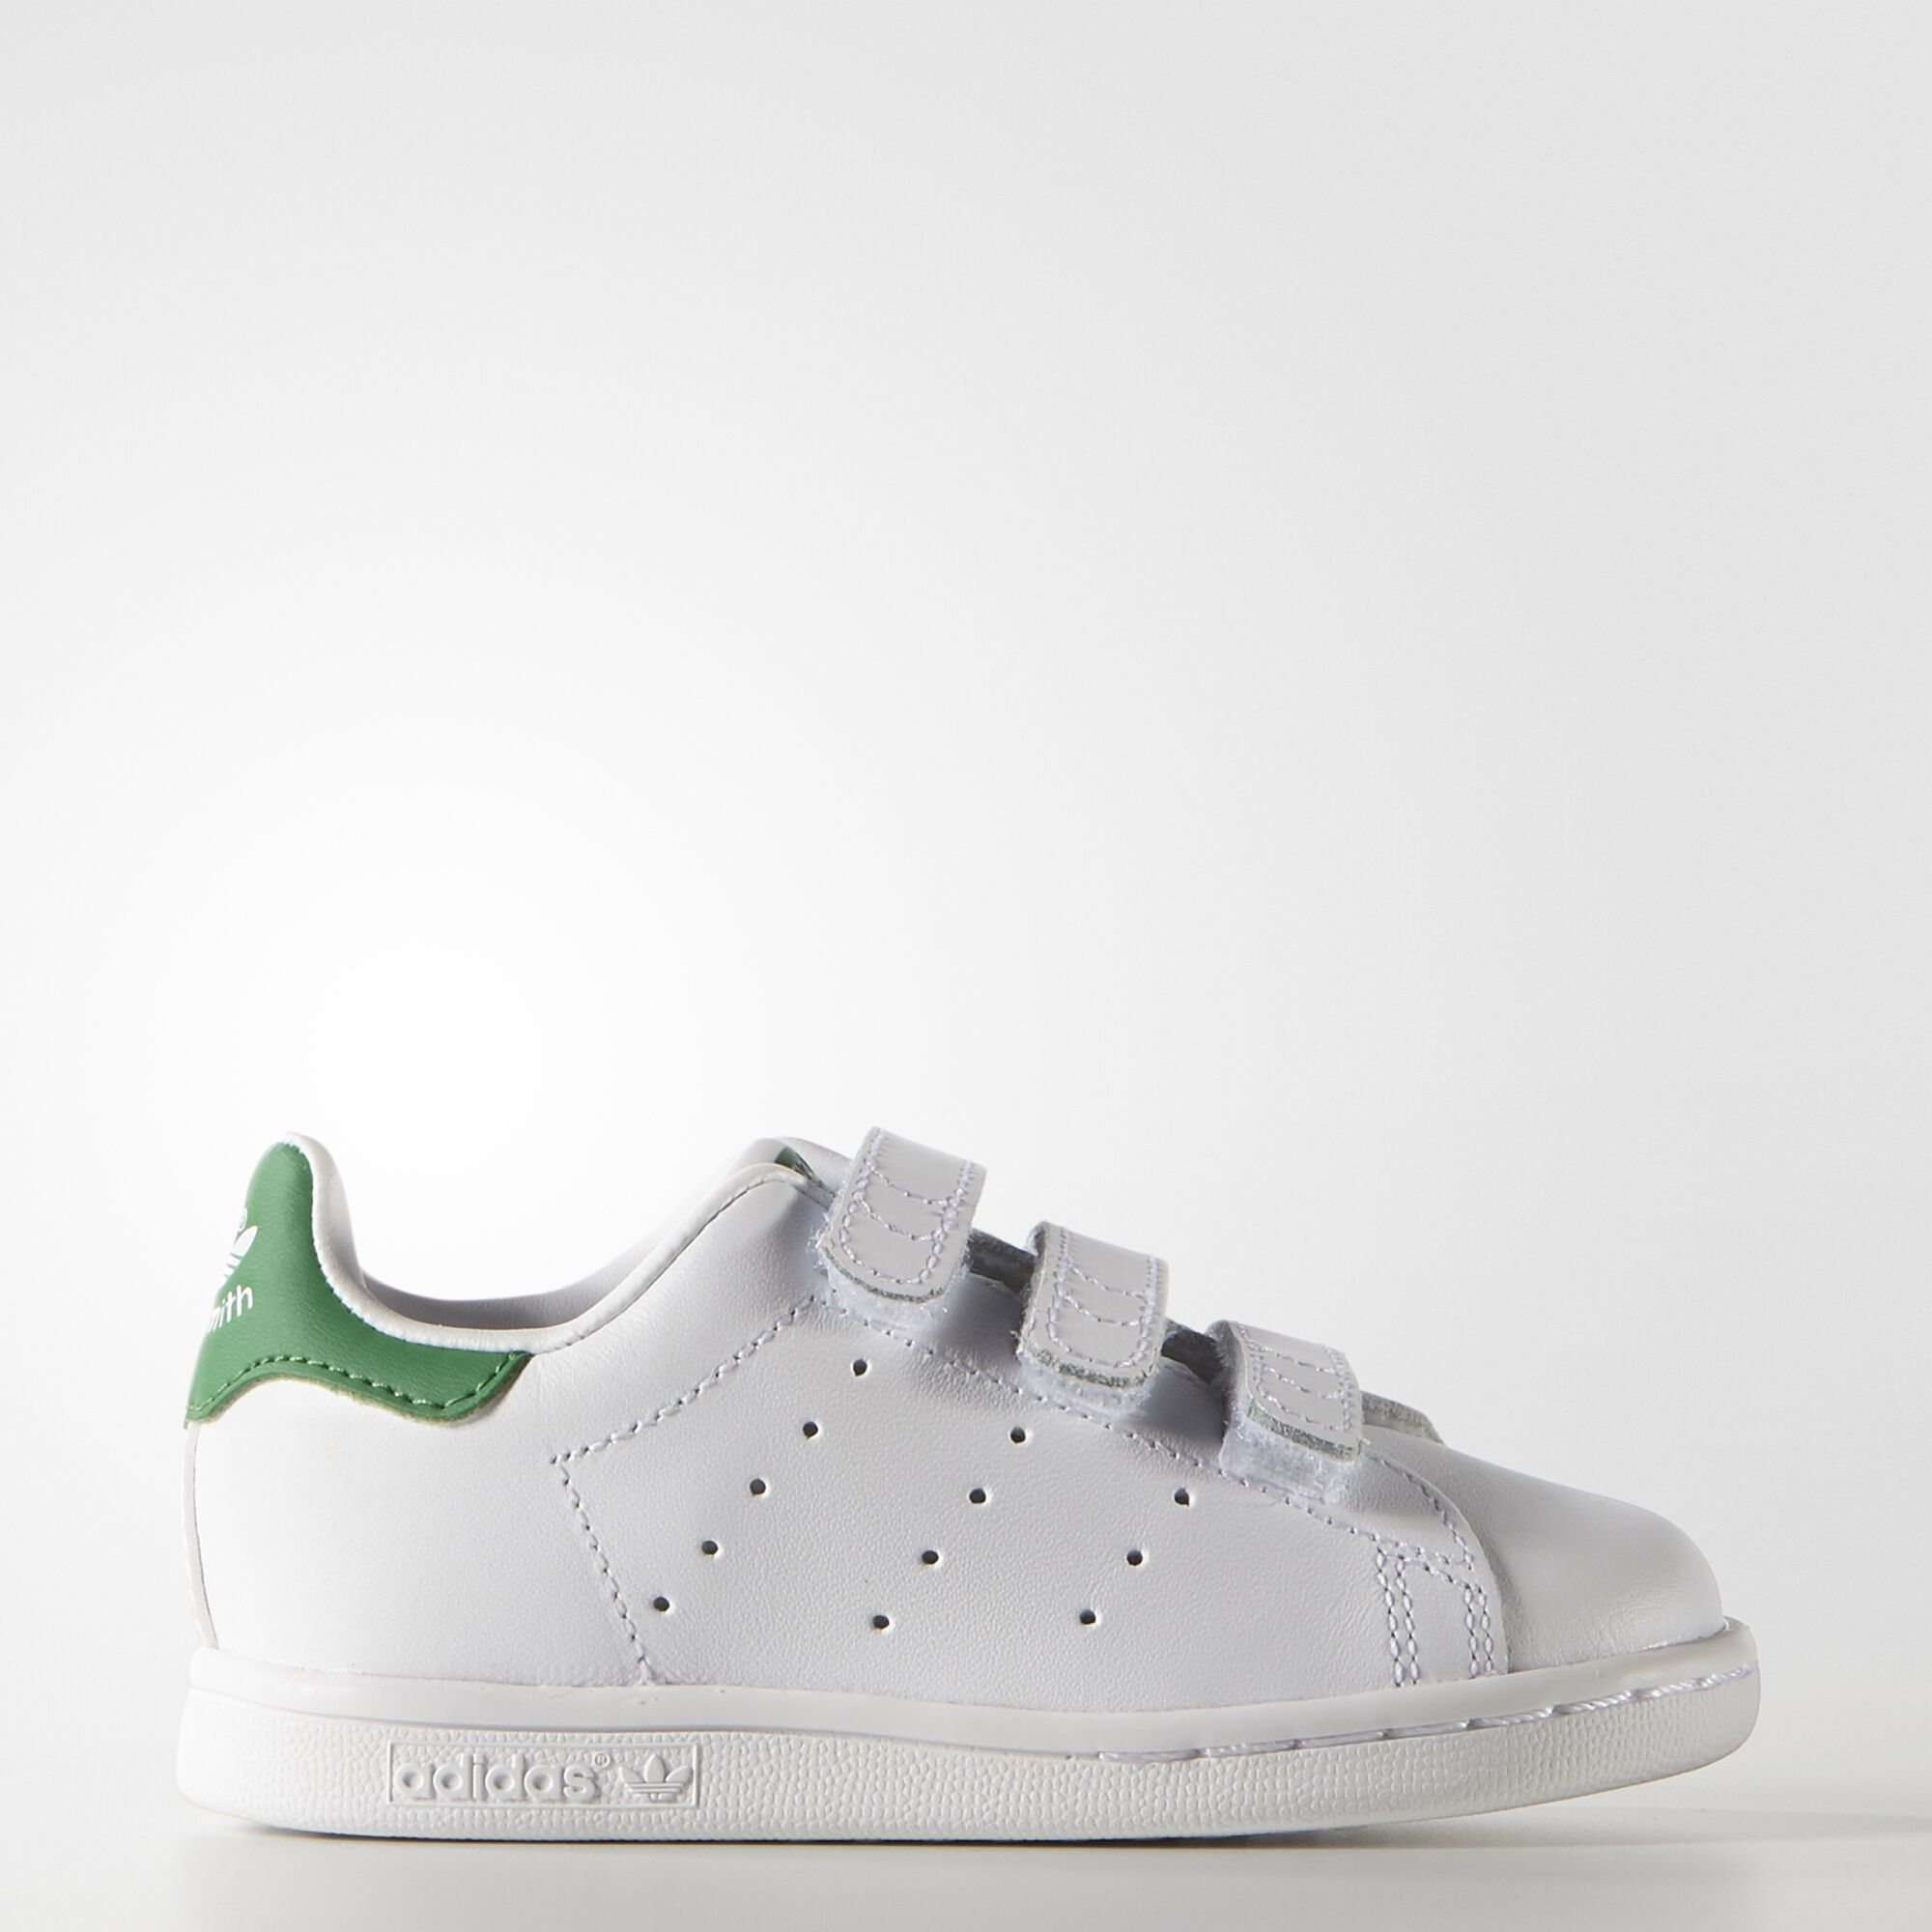 Adidas Originals Stan Smith Sneakers Running White Green